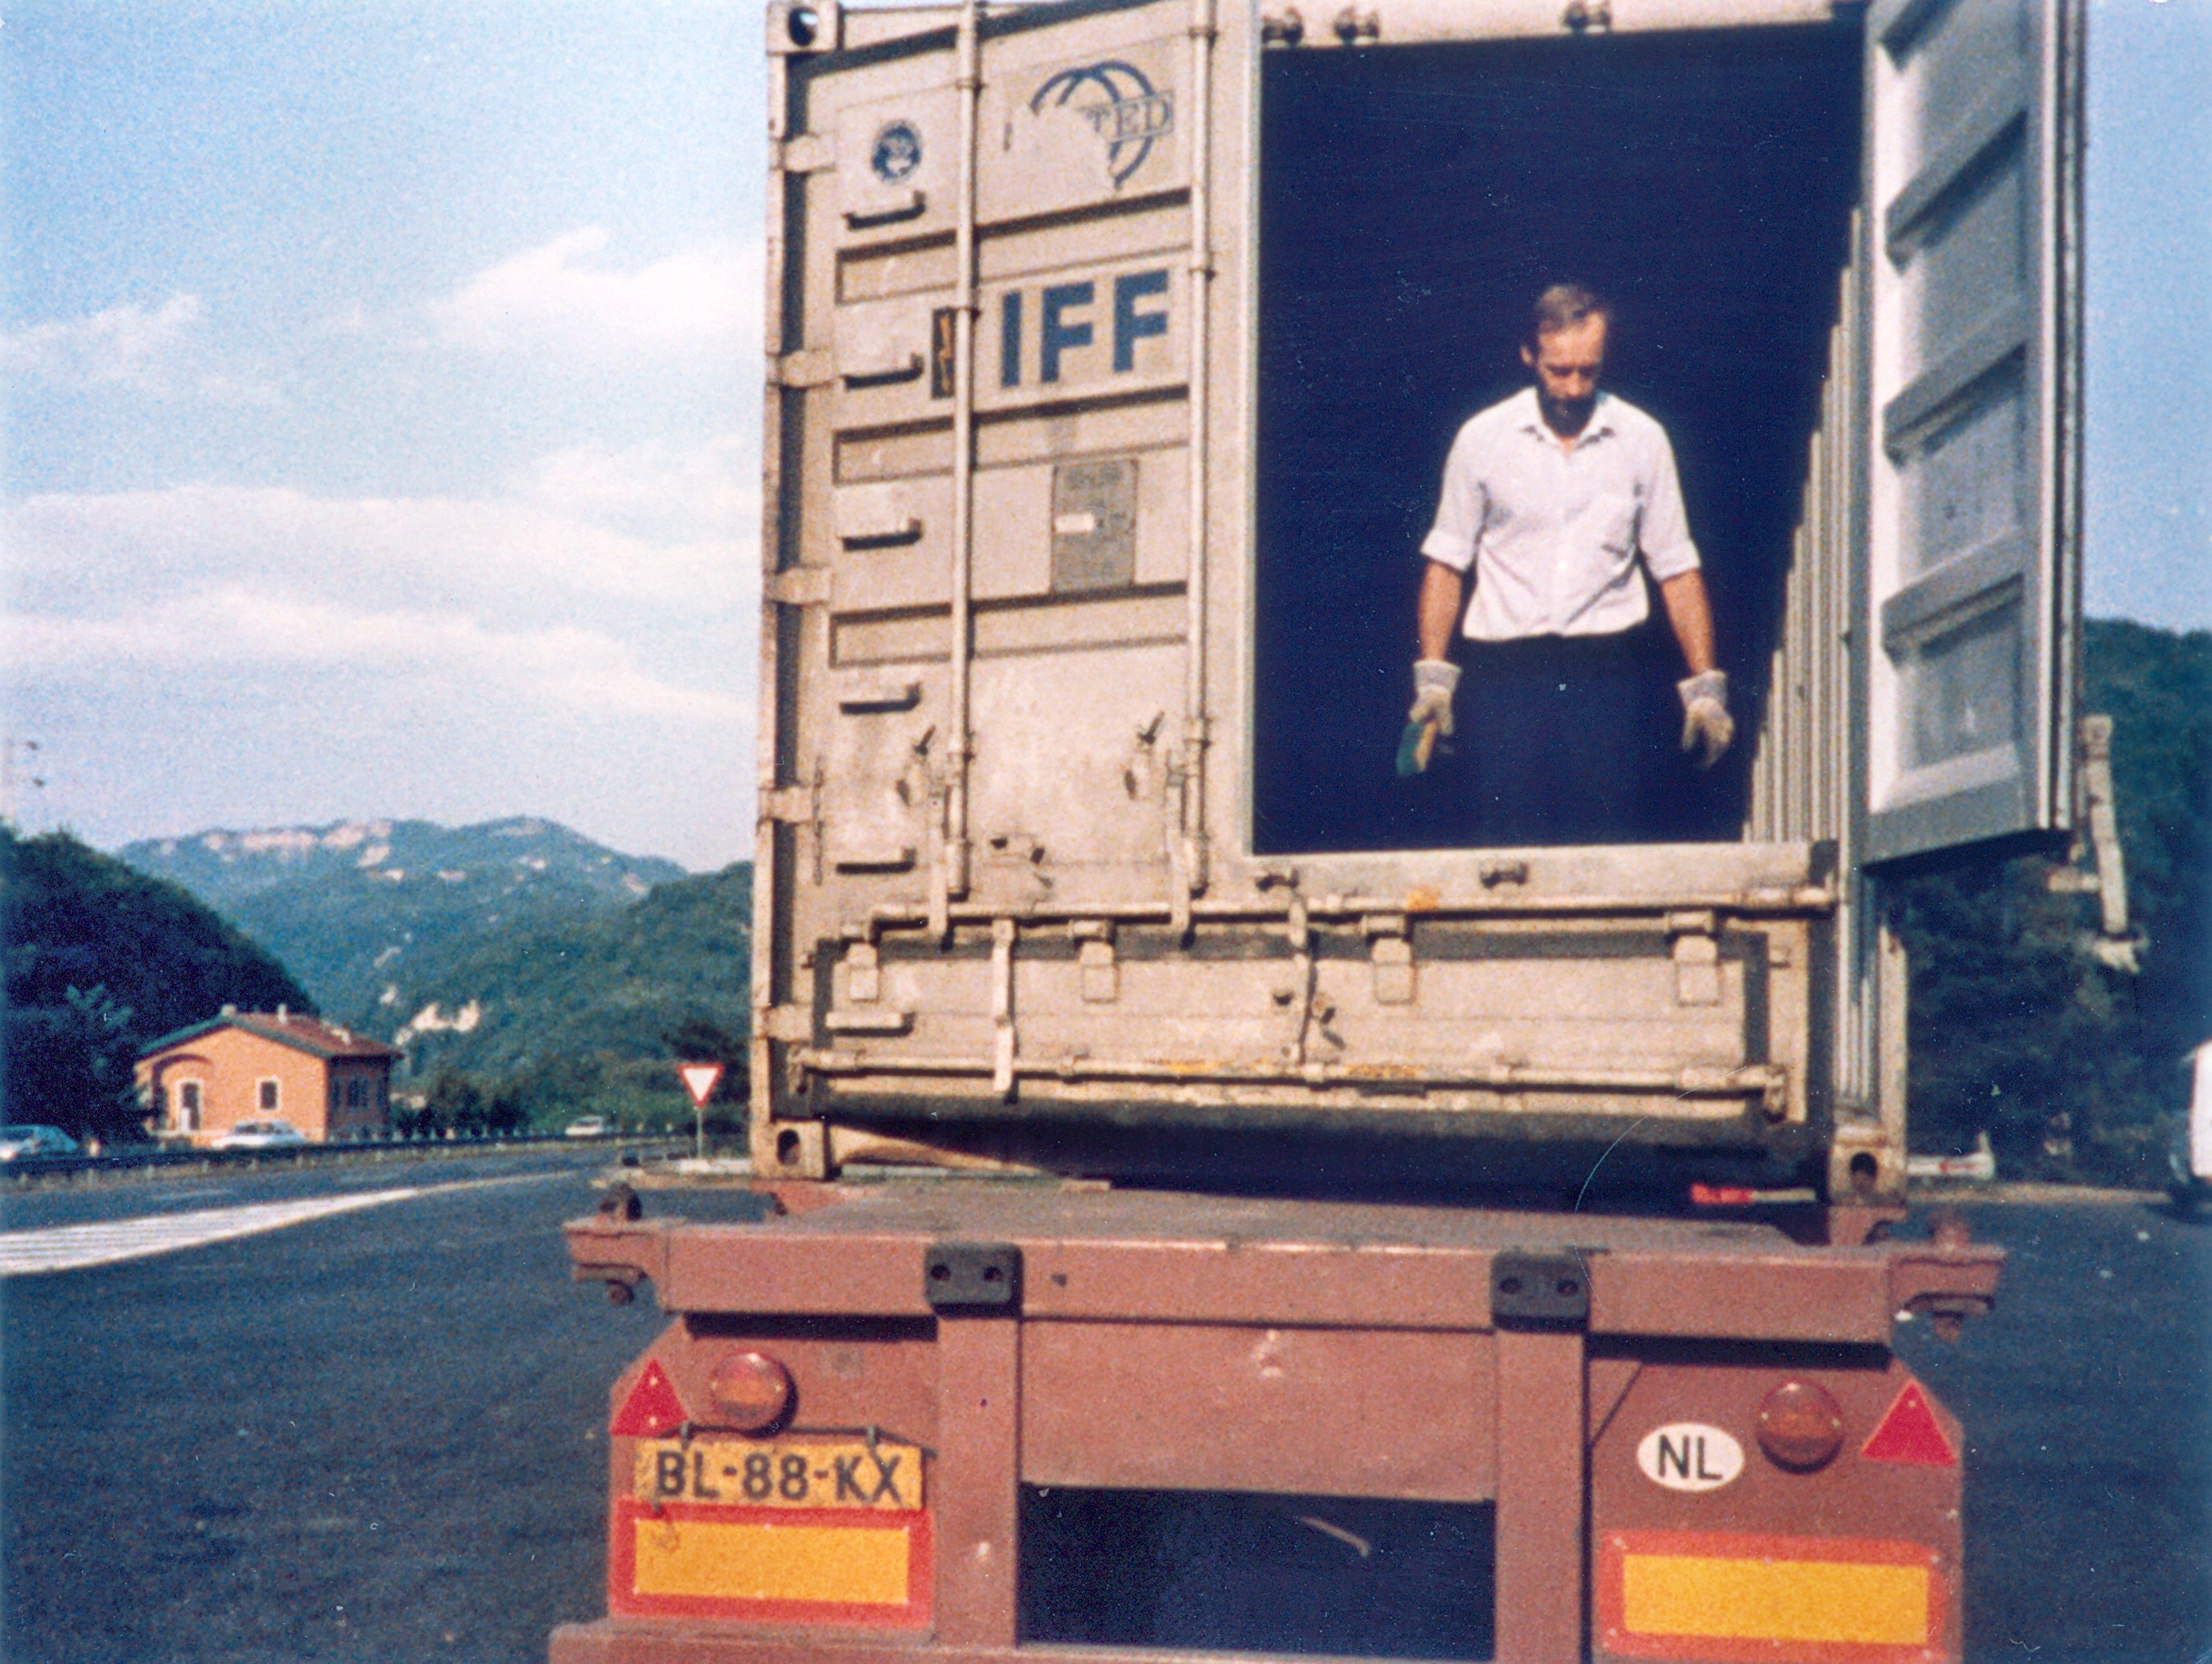 Peeman-cleaning-a-bulk-container-near-Pomezia-Italy--20-aug-1986